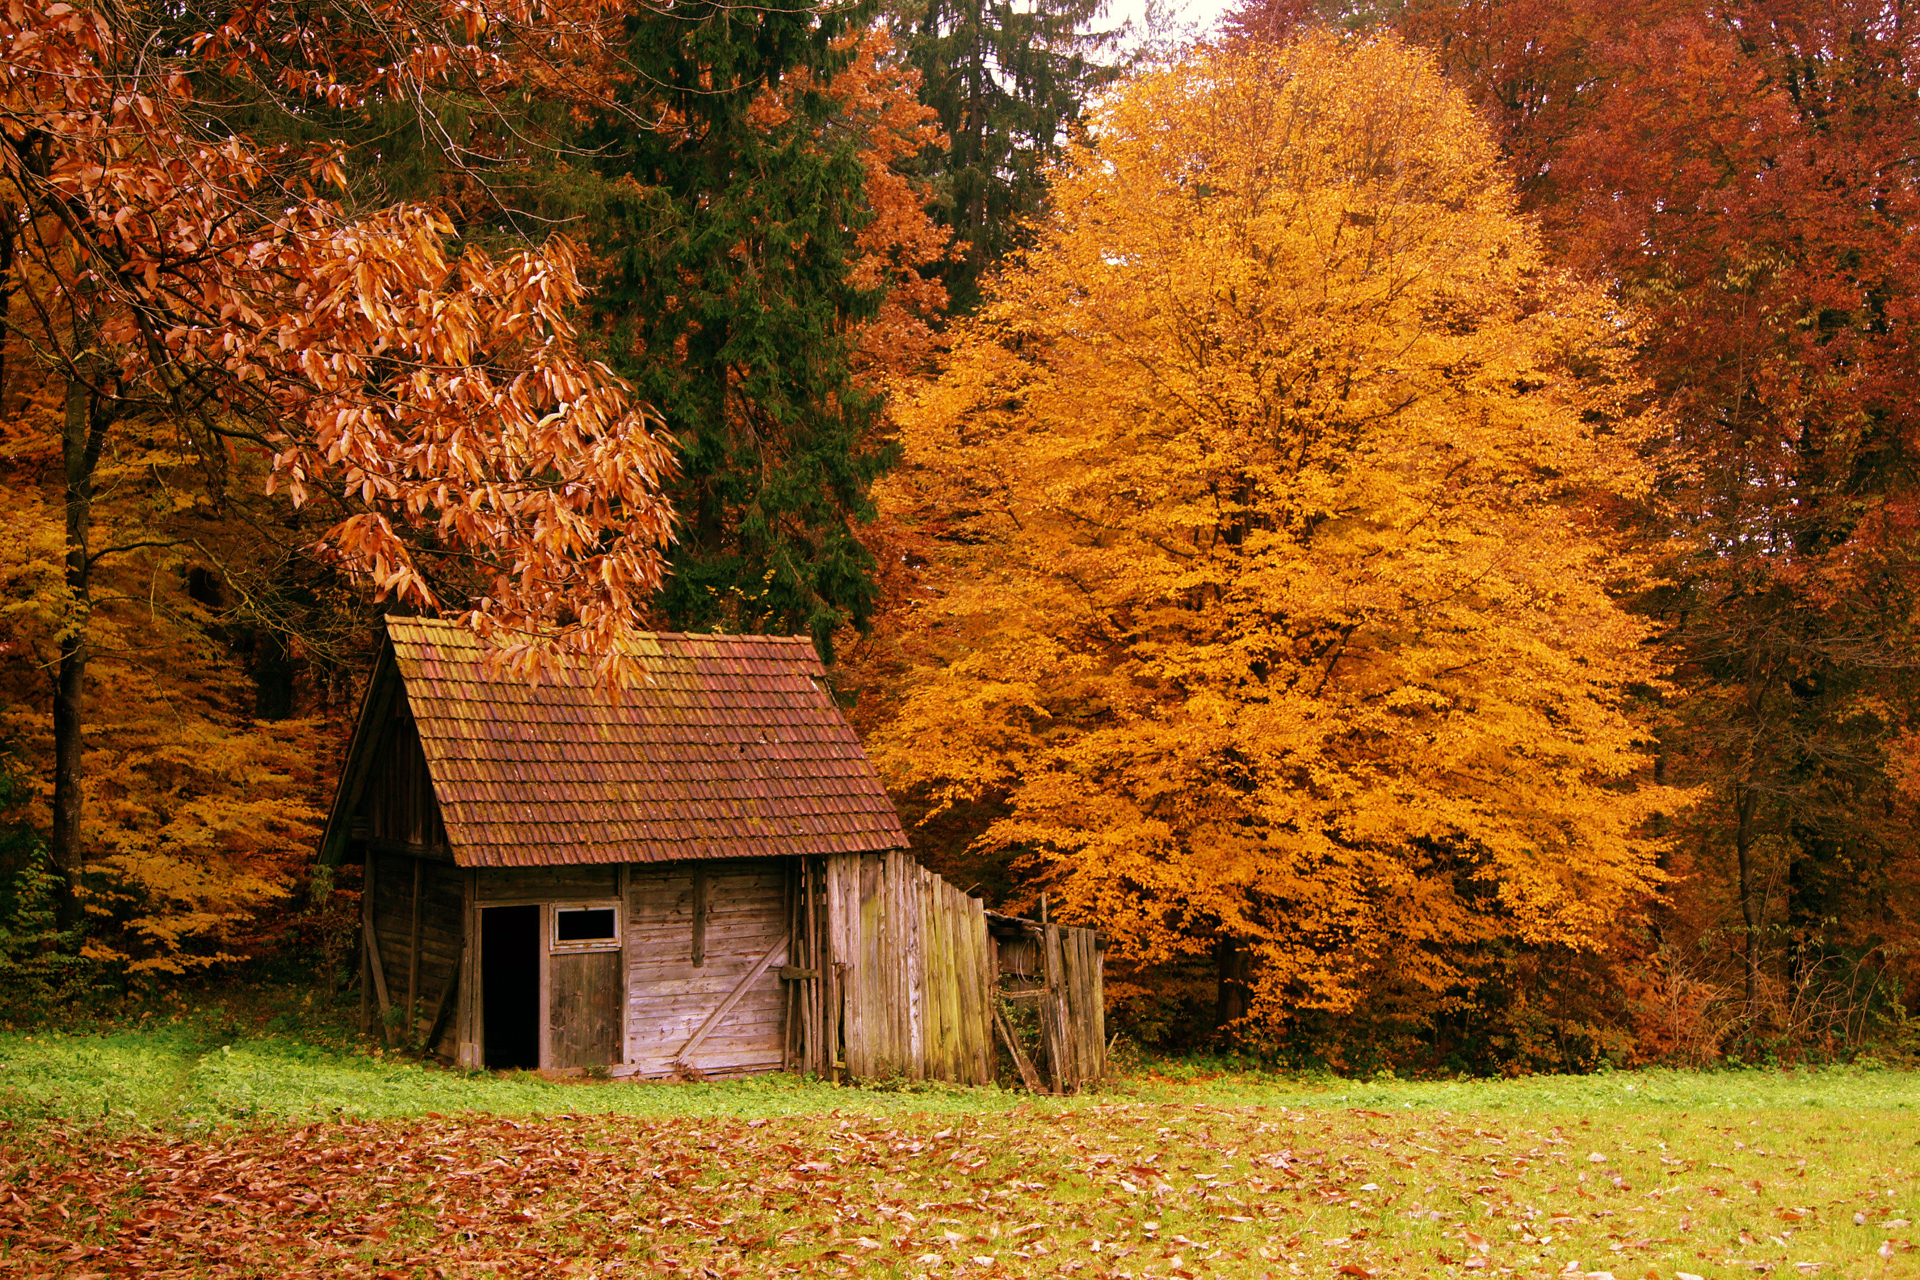 autumn 1 buildings 1 fall 1 forest 1 landscapes 1 nature 1 scenery 1 1920x1280